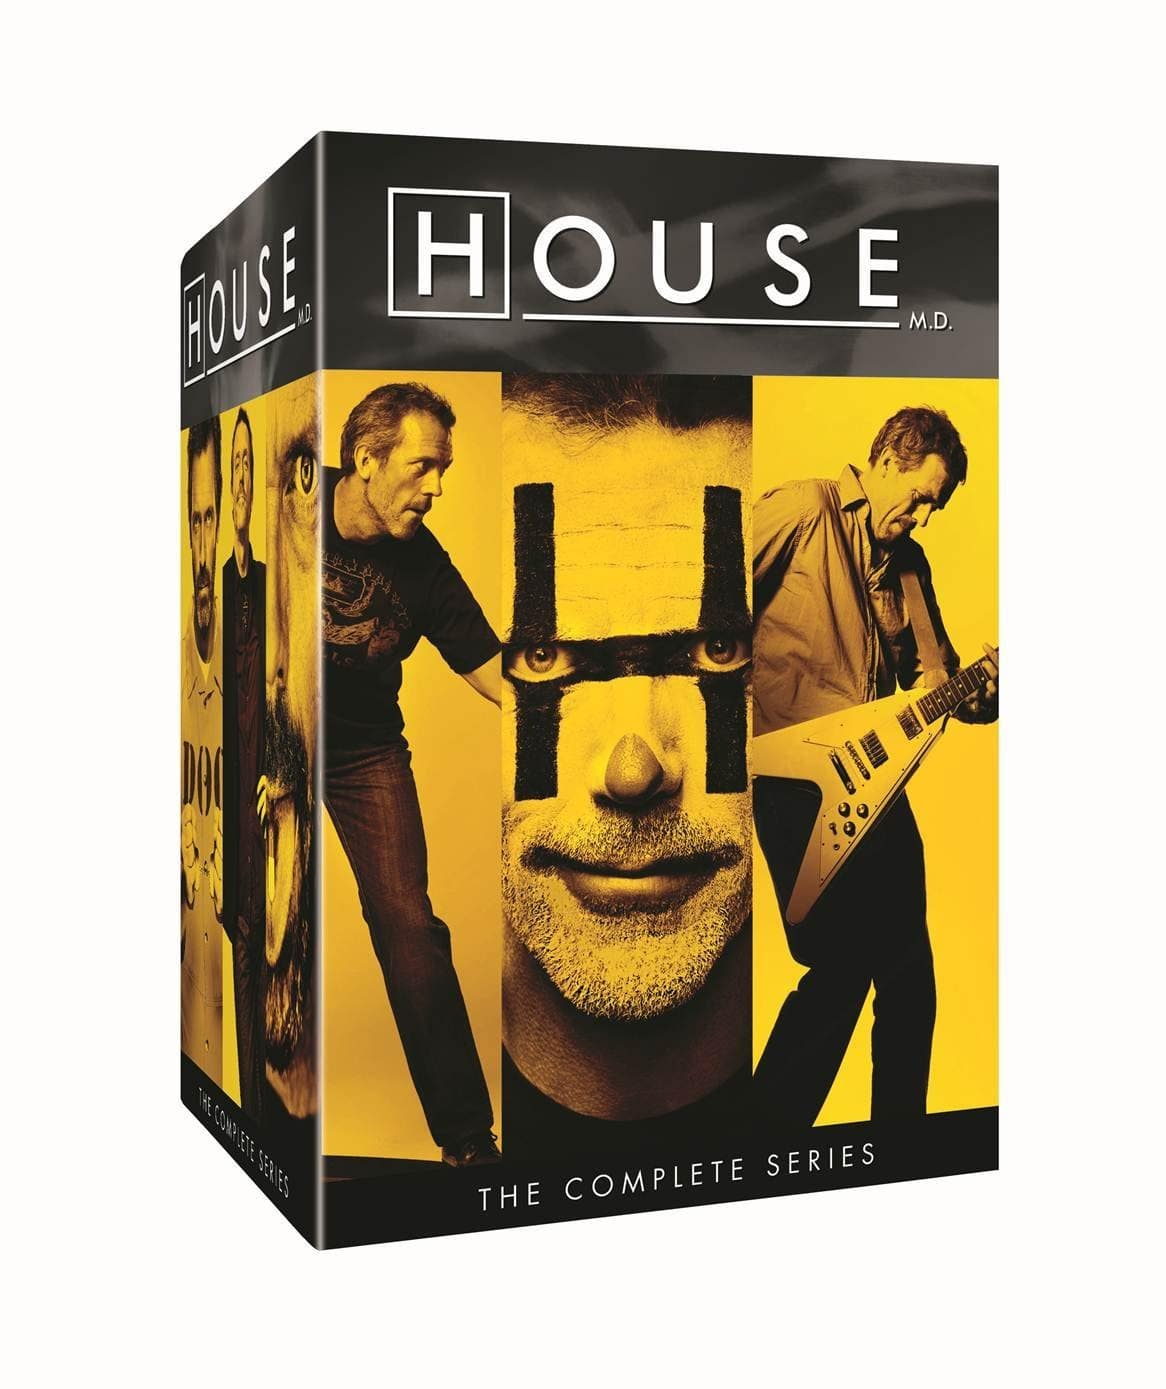 House, M.D.: The Complete Series (41 DVD's) $59.99 + FS